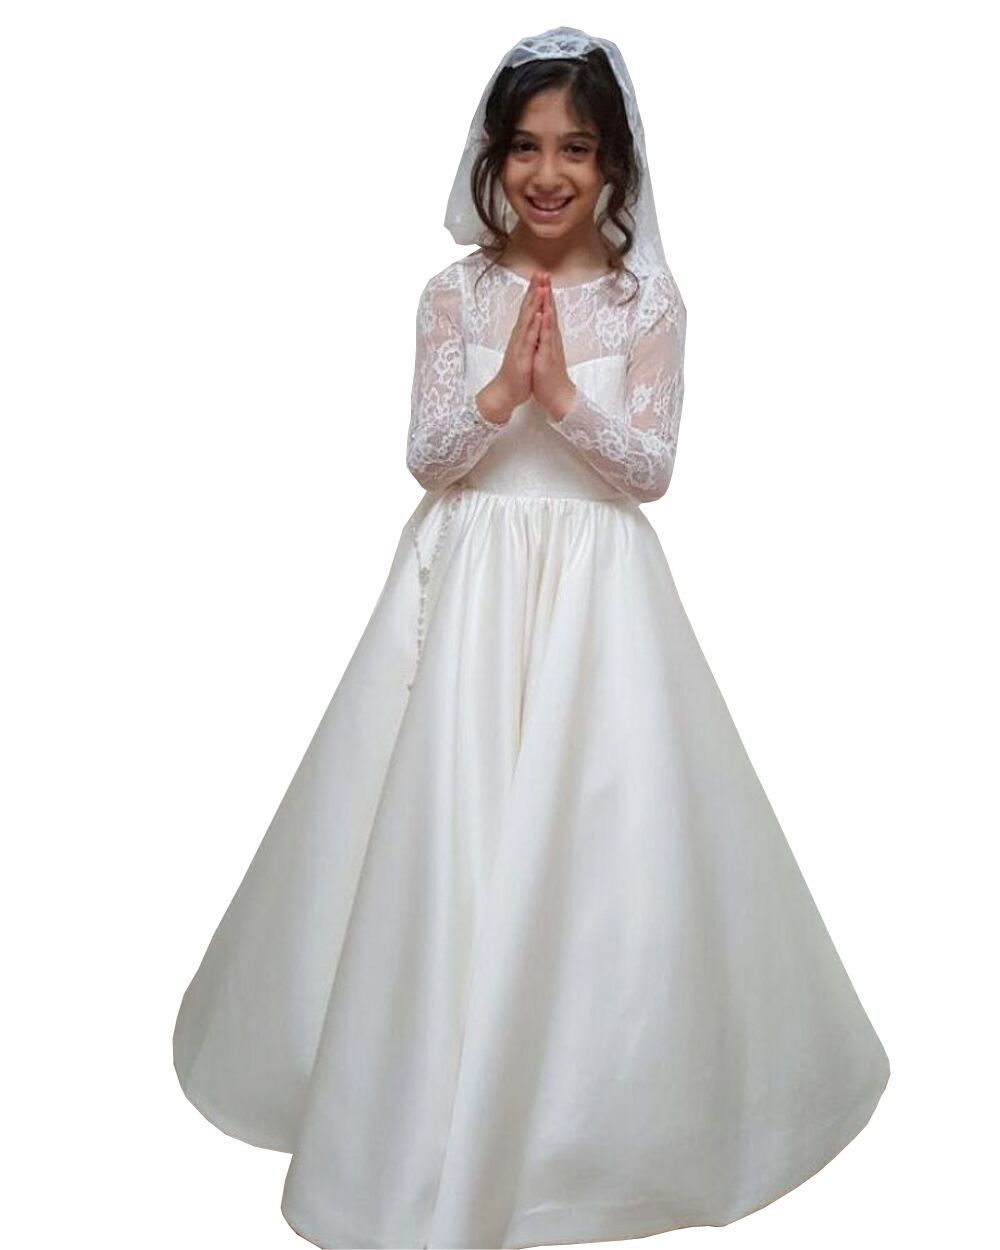 Banfvting Vintage Lace Satin Flower Girl Dress Long Sleeves